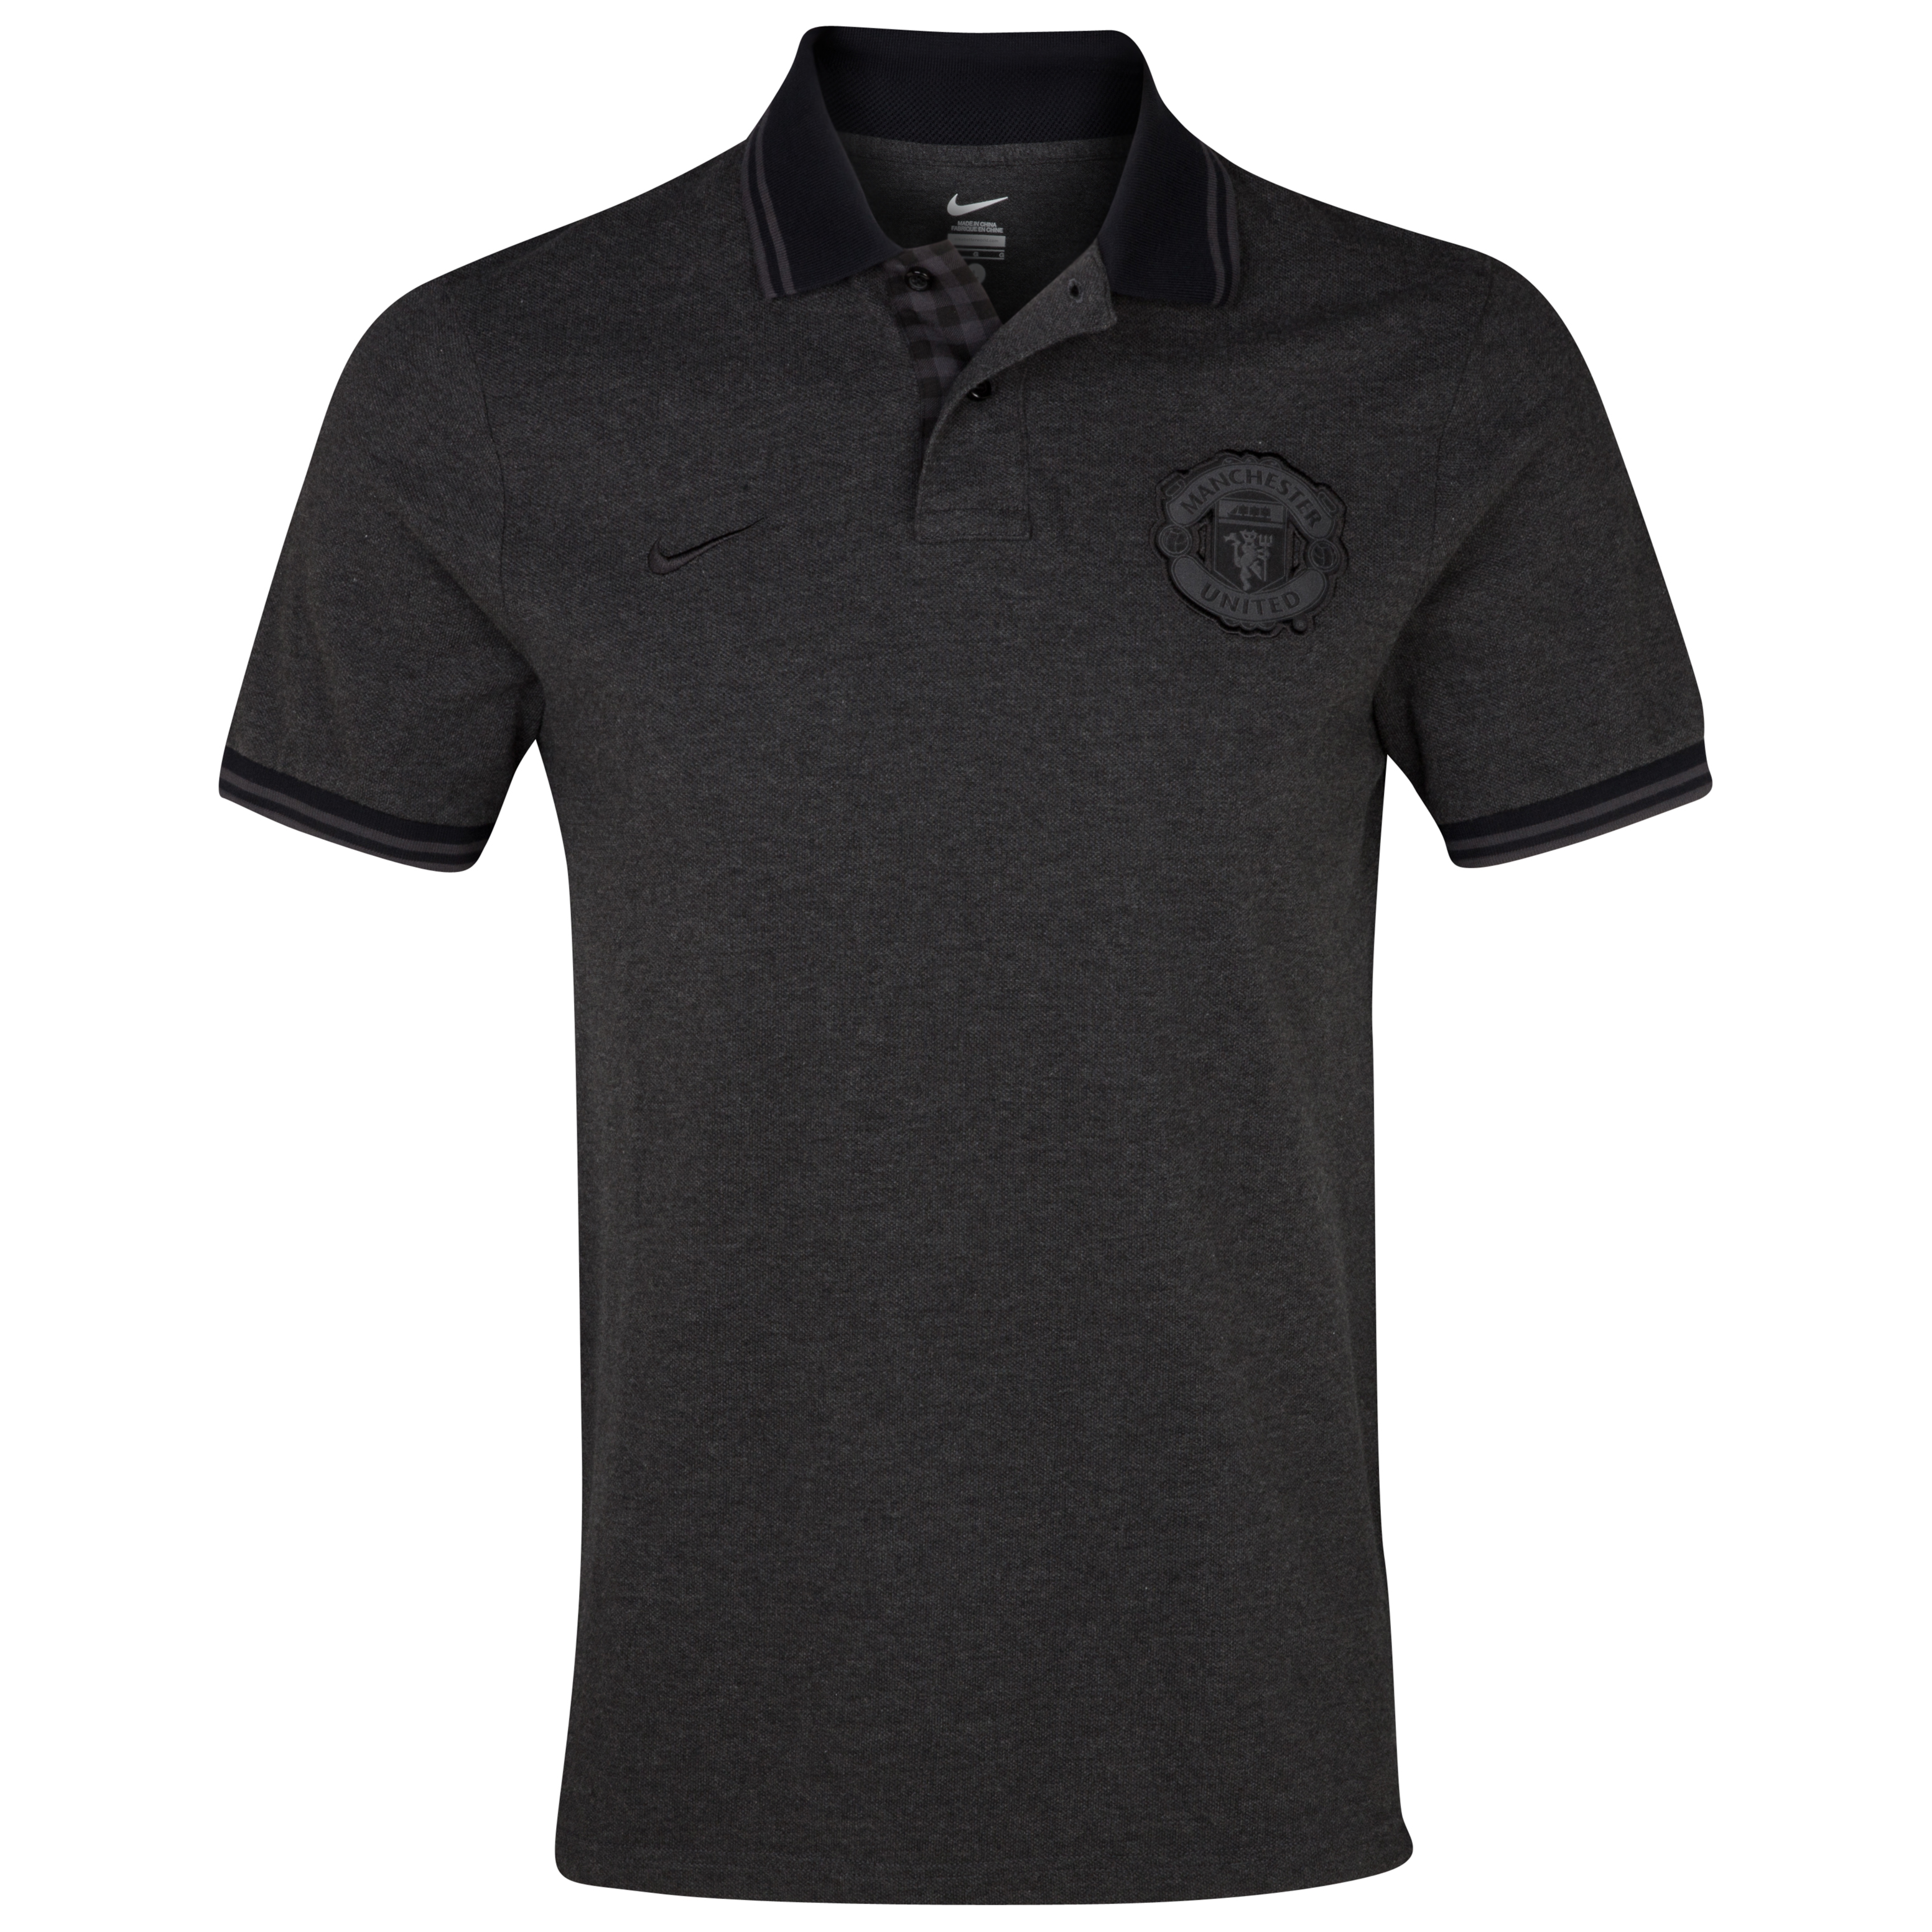 Manchester United Authentic Grand Slam Polo - Black Heather/Black